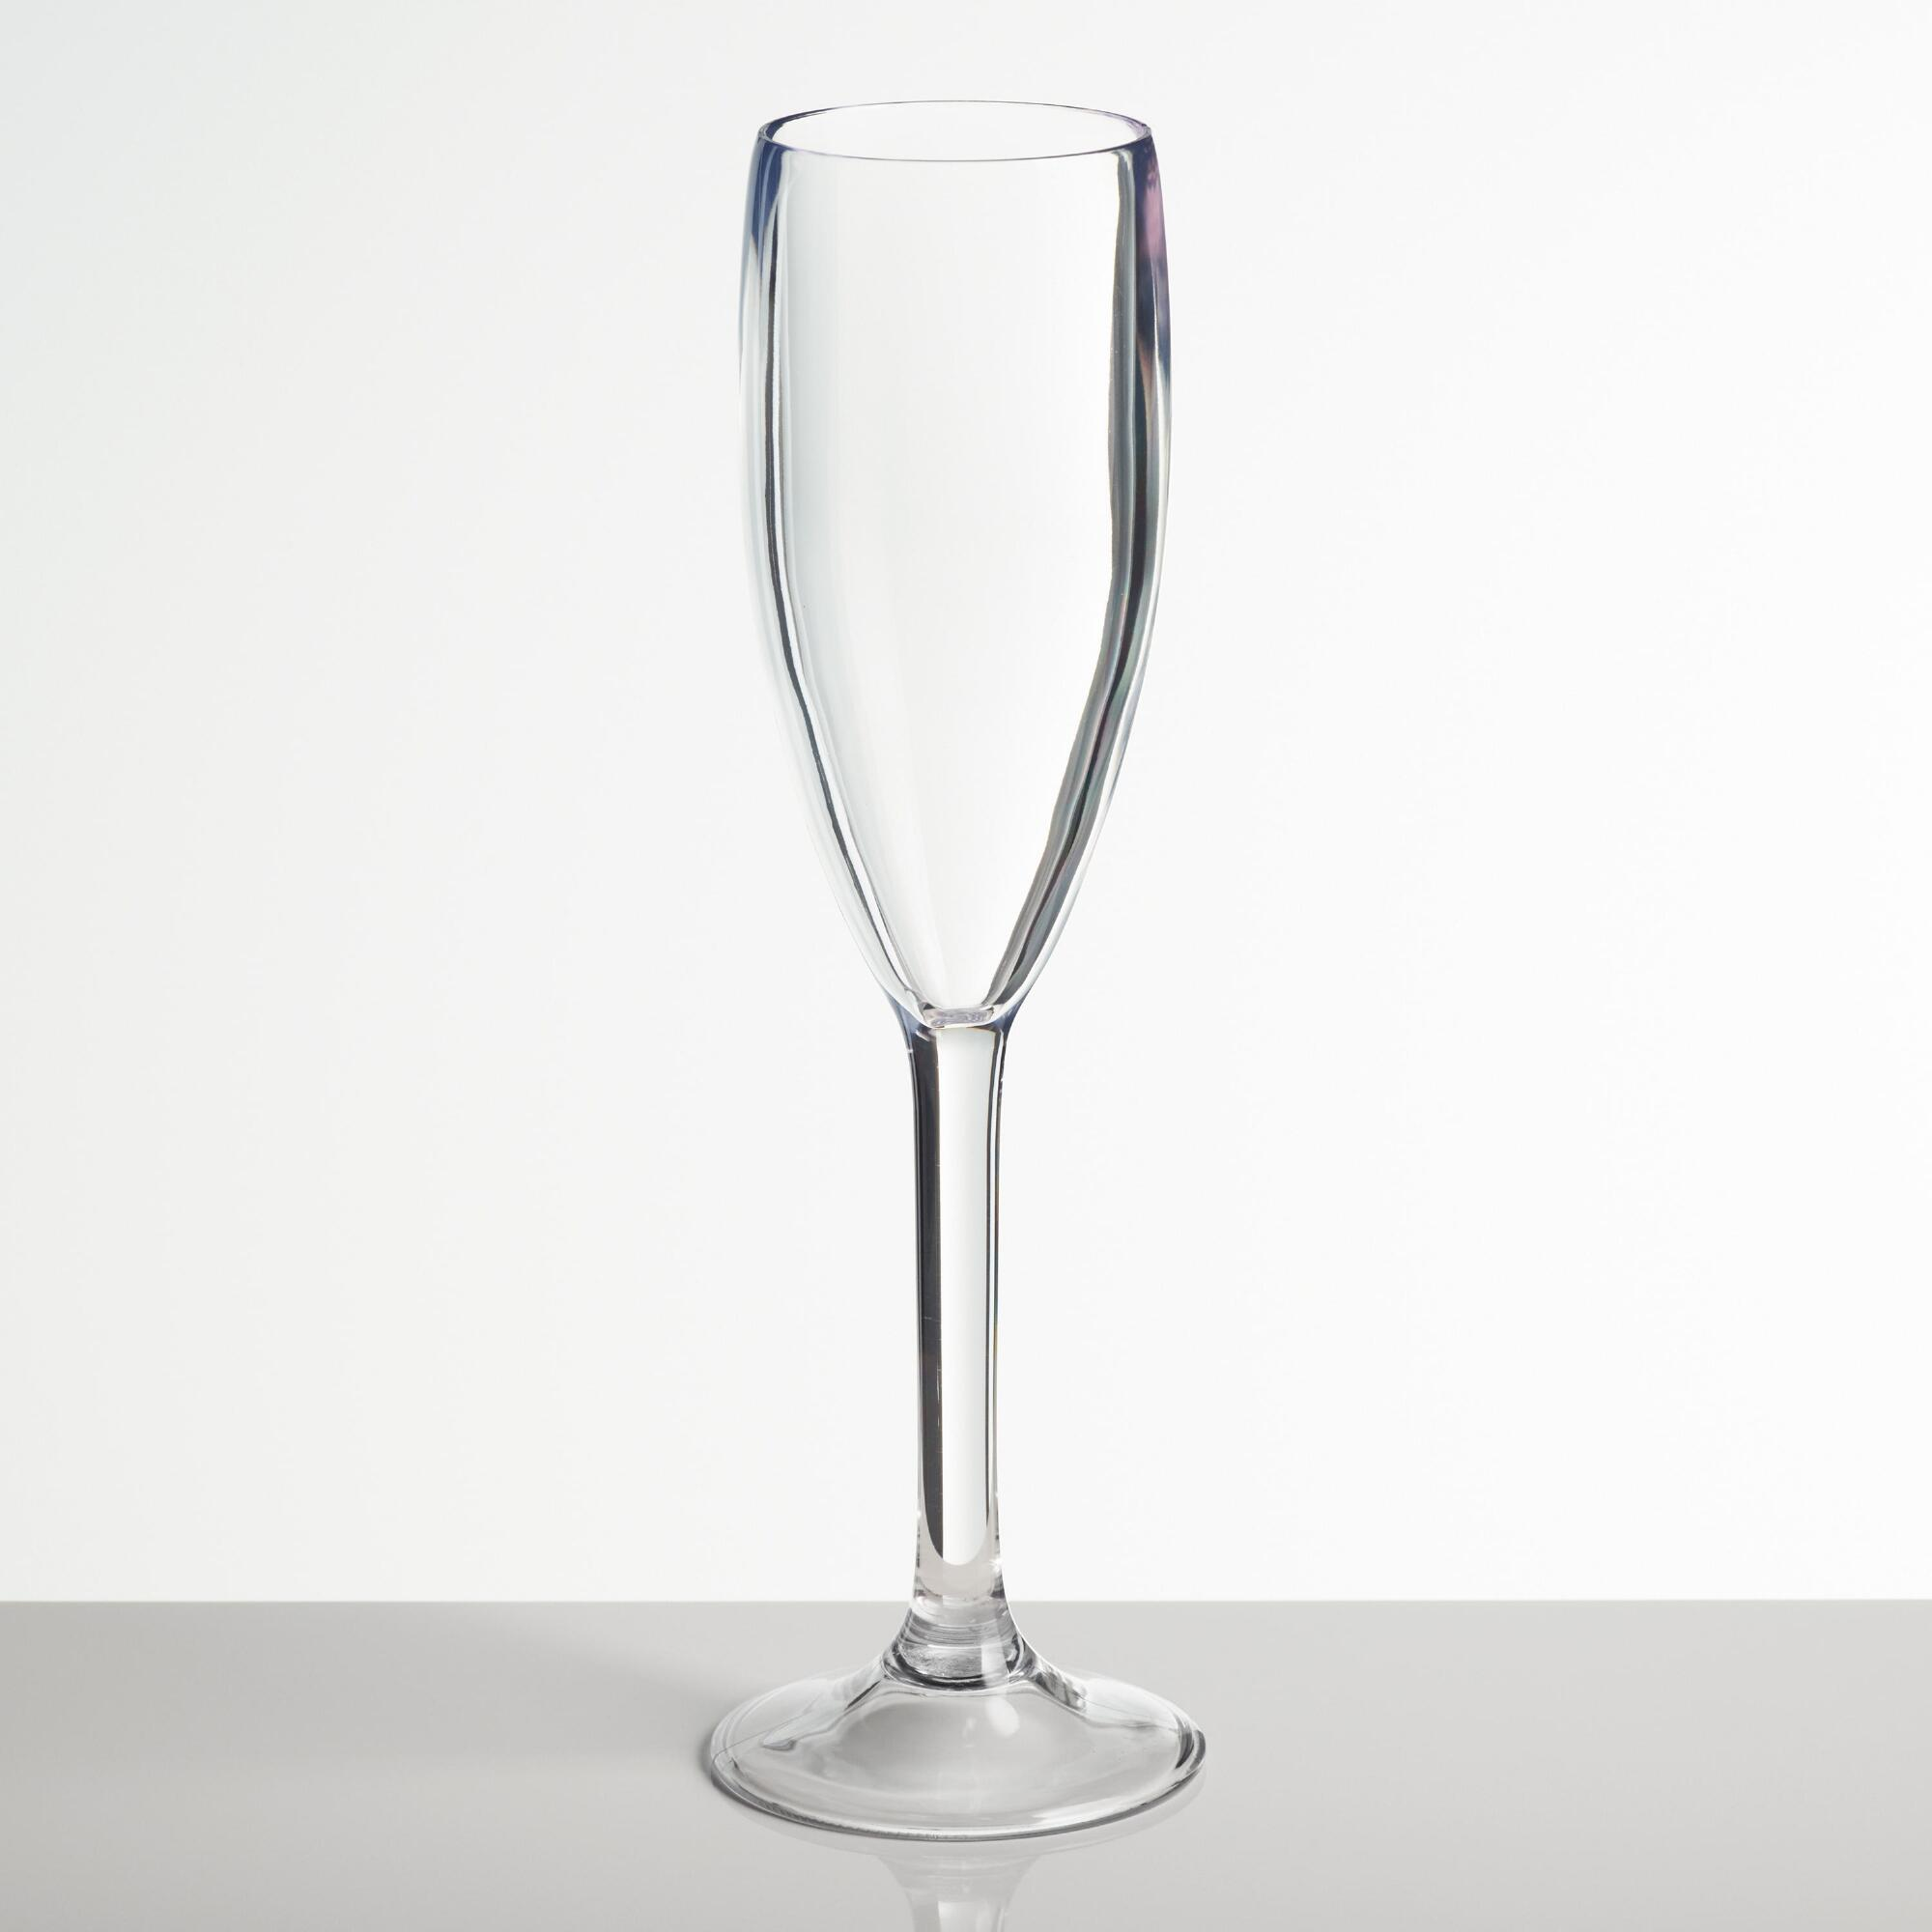 Acrylic Champagne Flutes Set of 4 - Dinner Plate by World Market